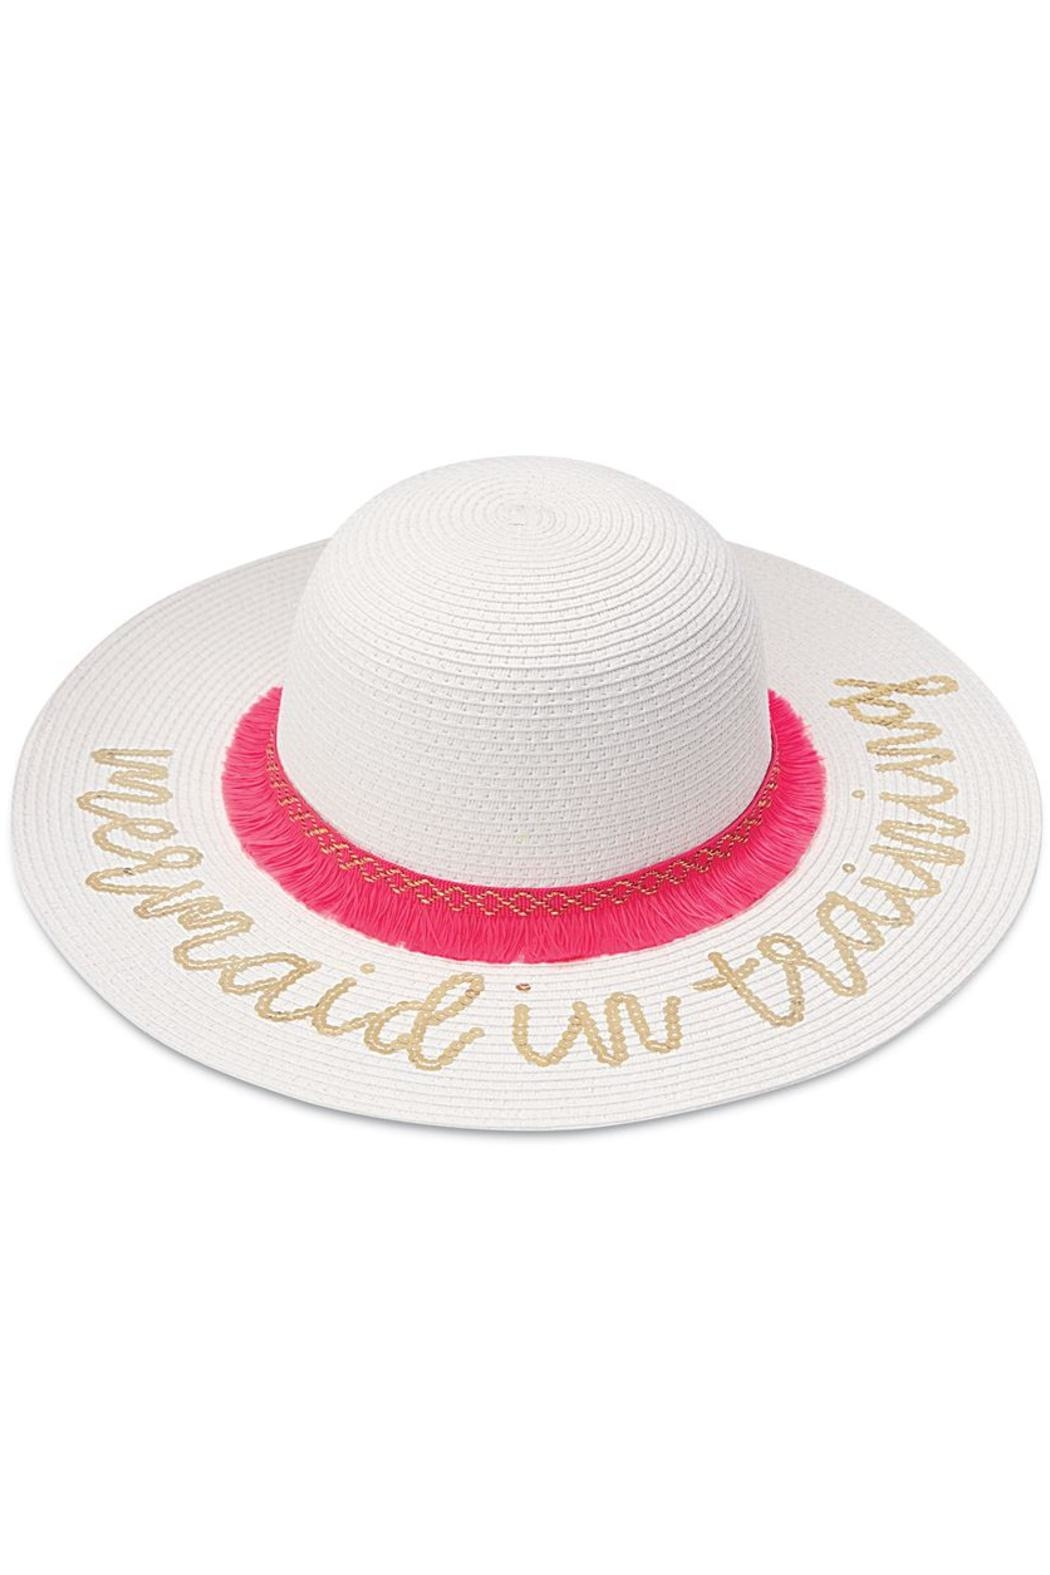 Mud Pie Mermaid Beach Hats - Front Cropped Image